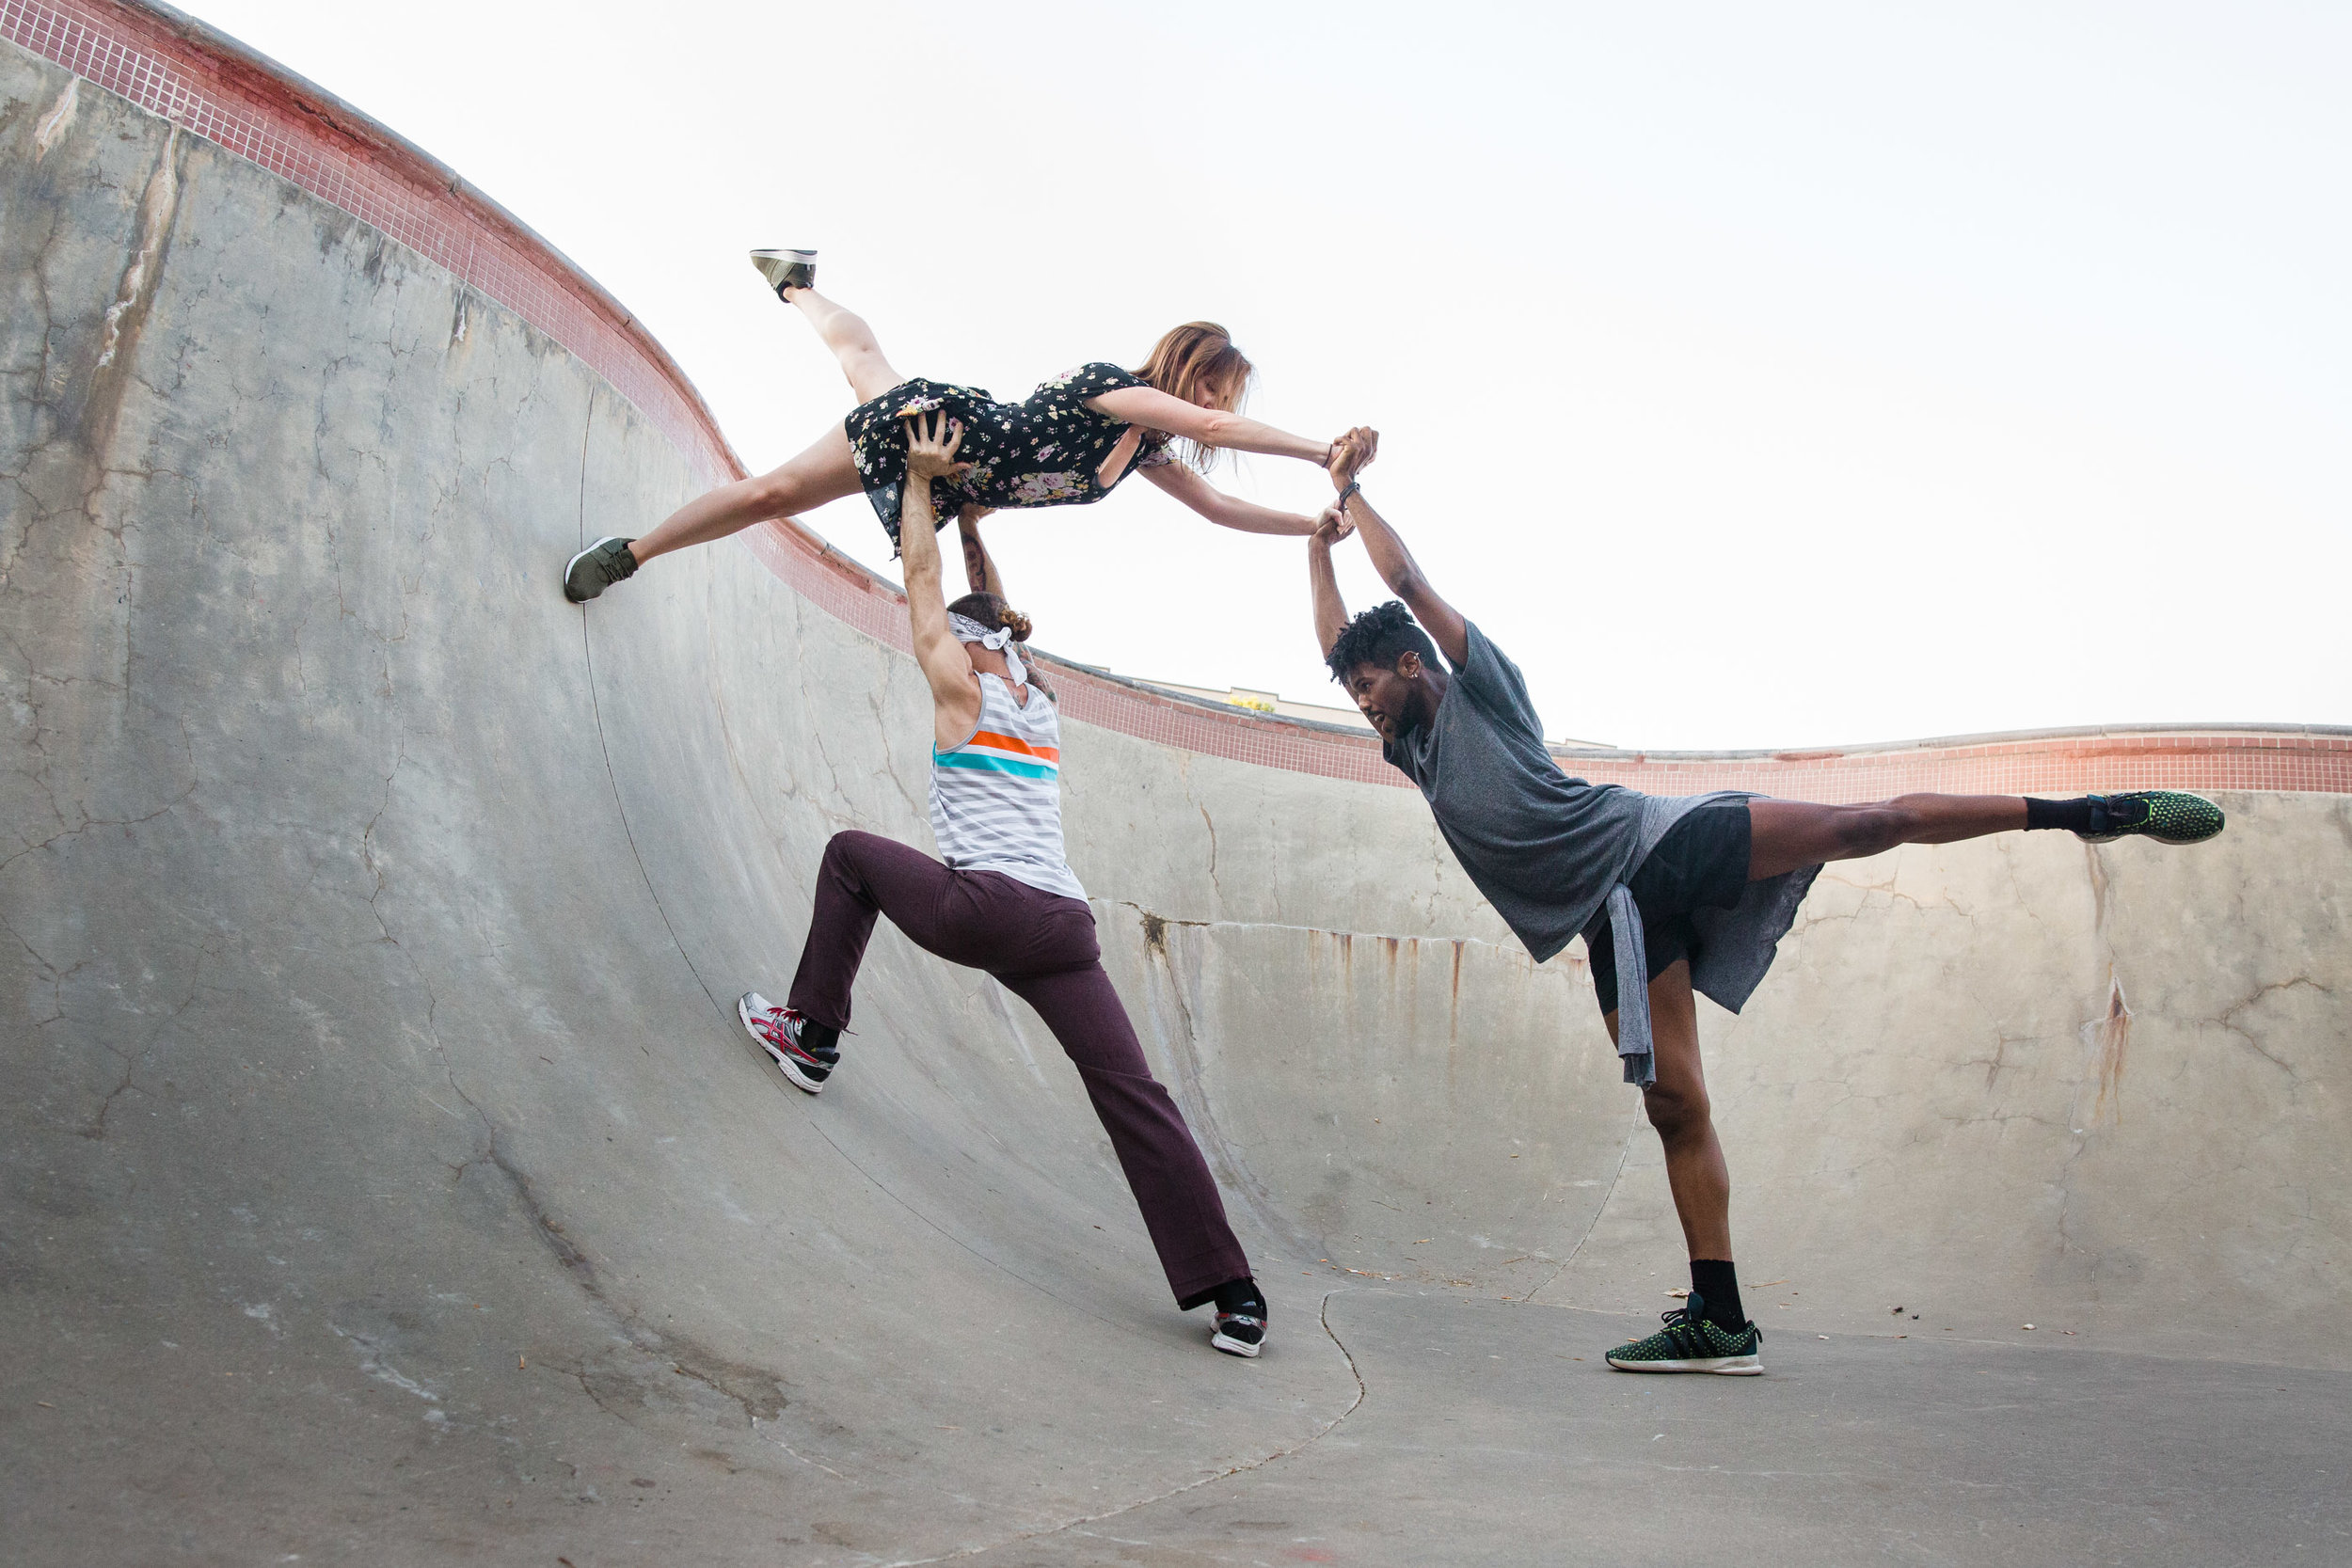 2018_08_25_shals_skate_park_durham_dances_web-selects-8528.jpg